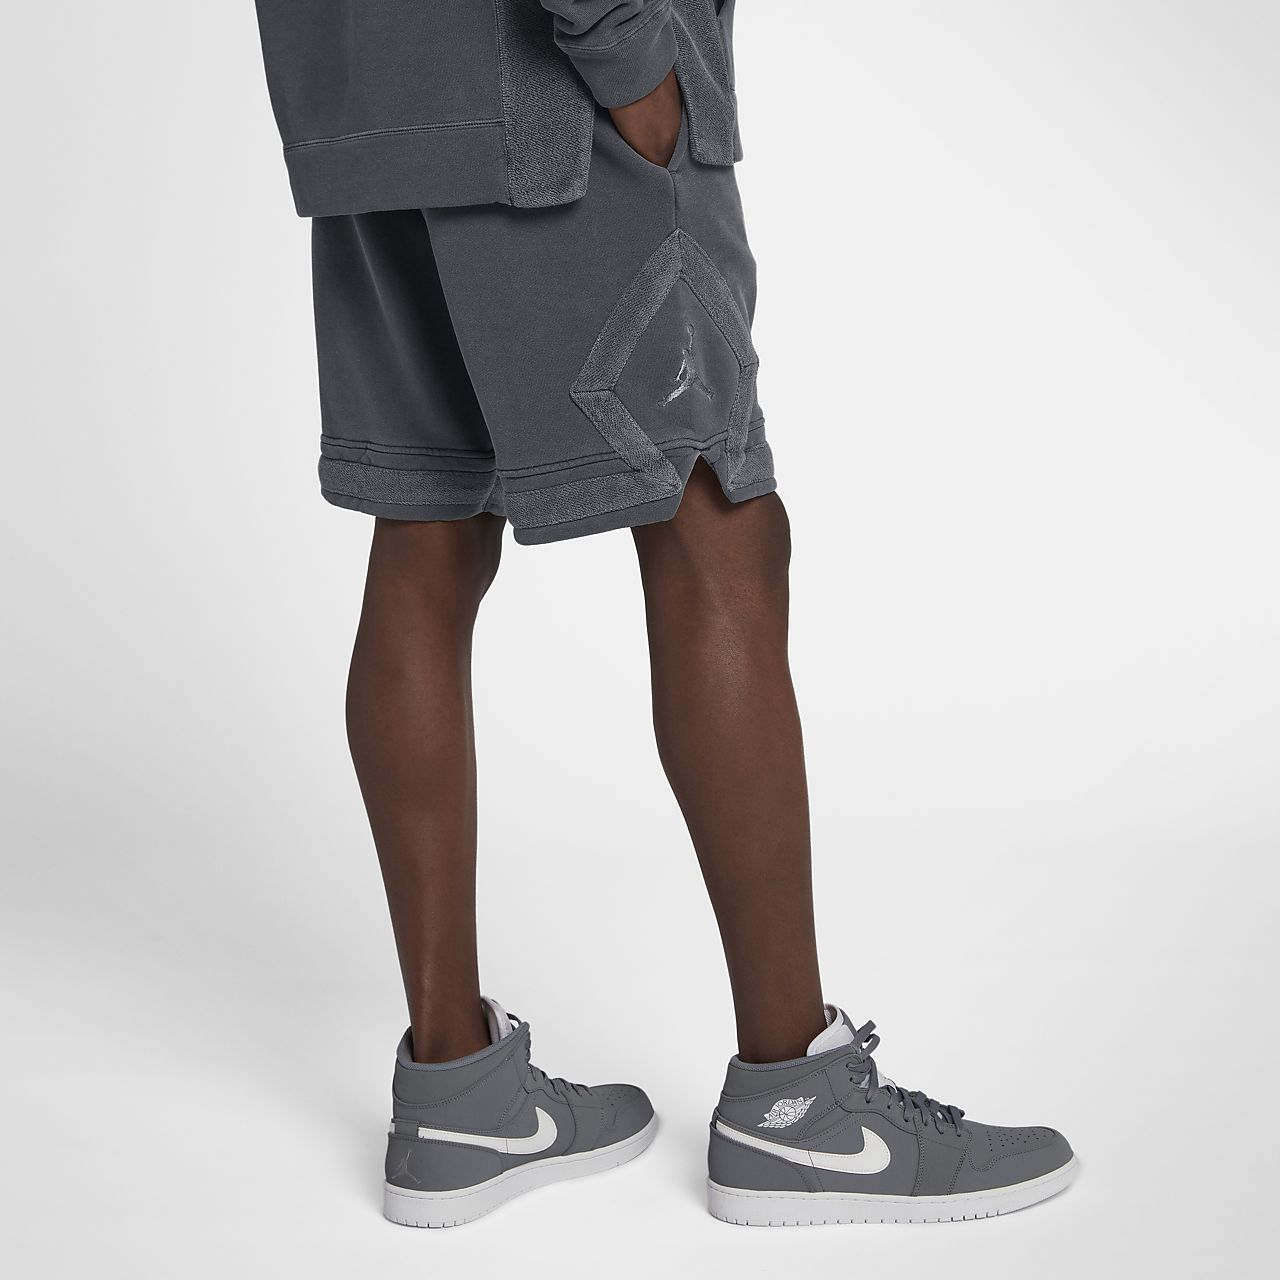 40704761d6e Jordan Sportswear Diamond Men's Washed Fleece Shorts. Nike.com IN